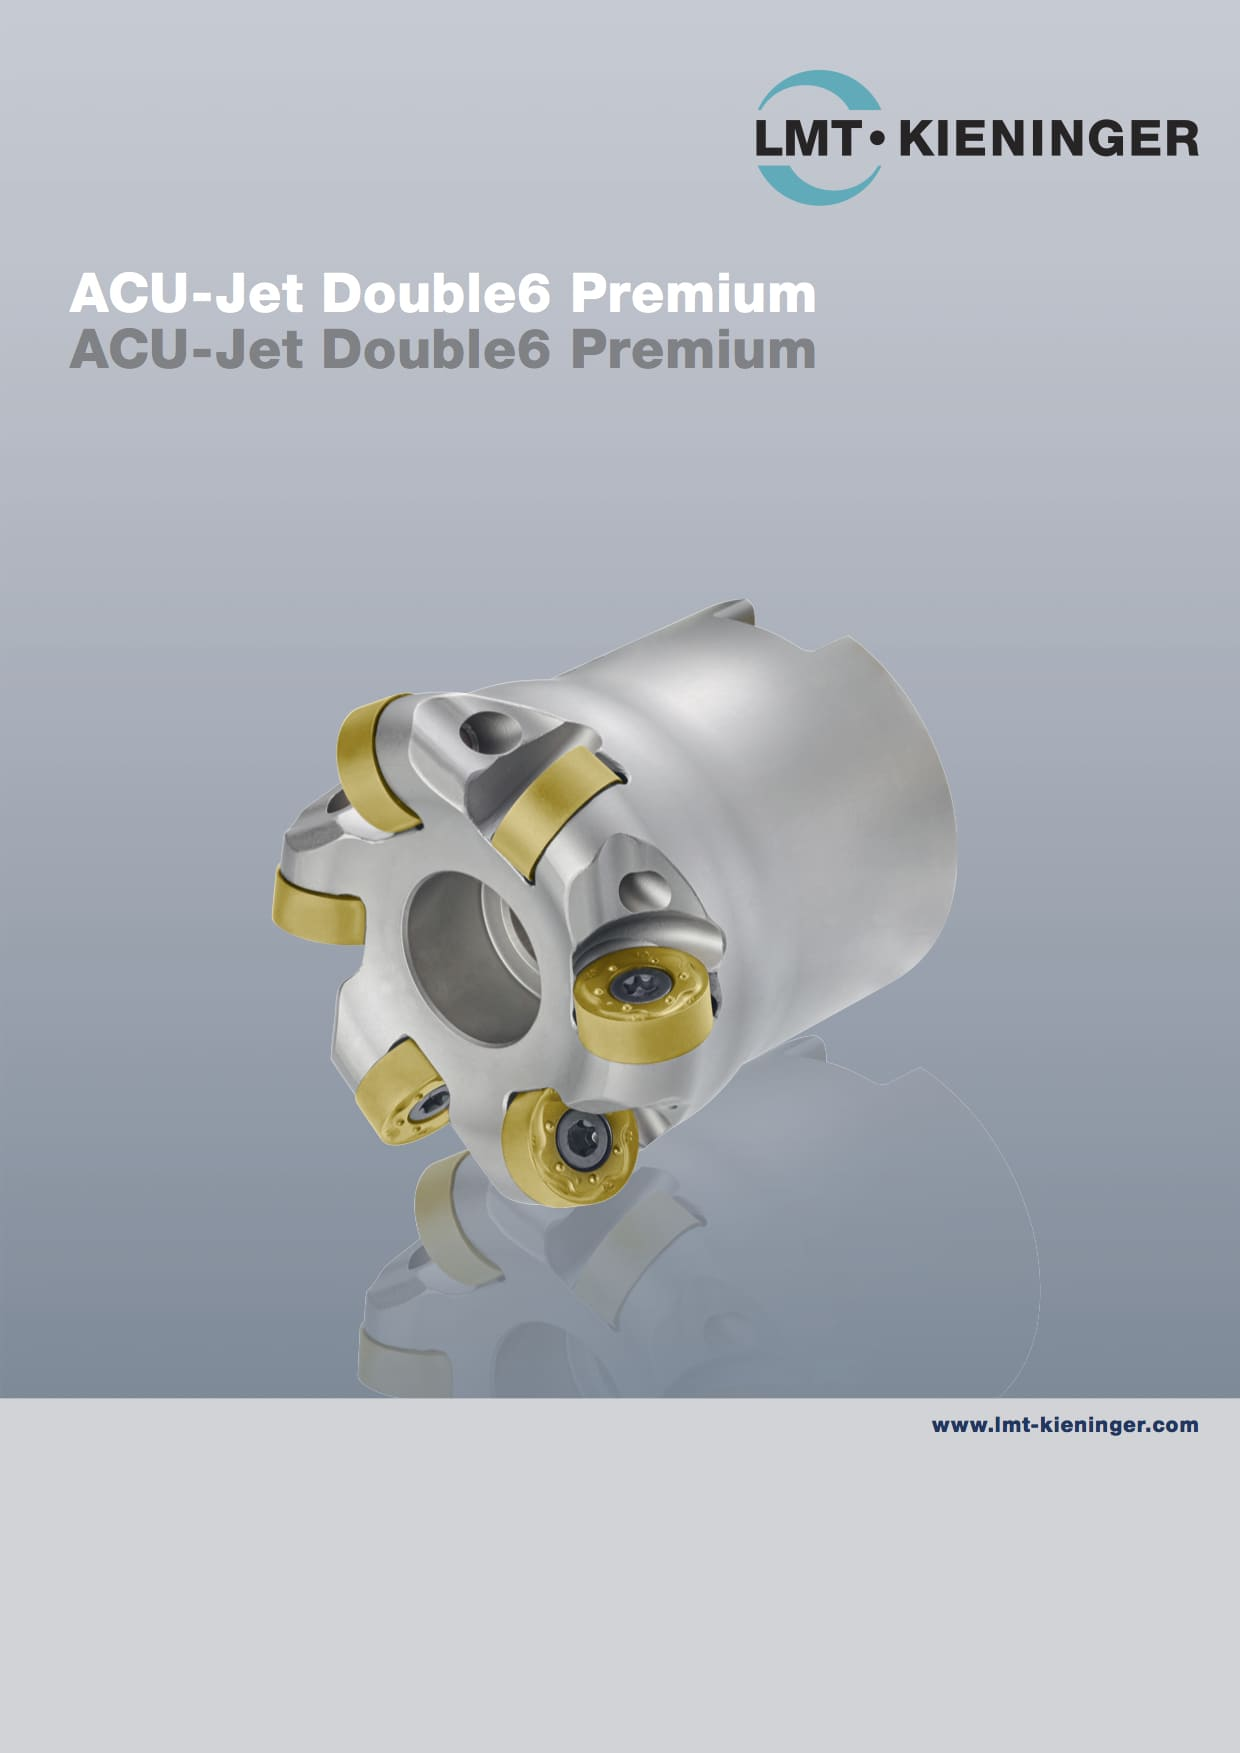 Copy cutter ACU-Jet Double6 Premium for ISO P, M, K, S